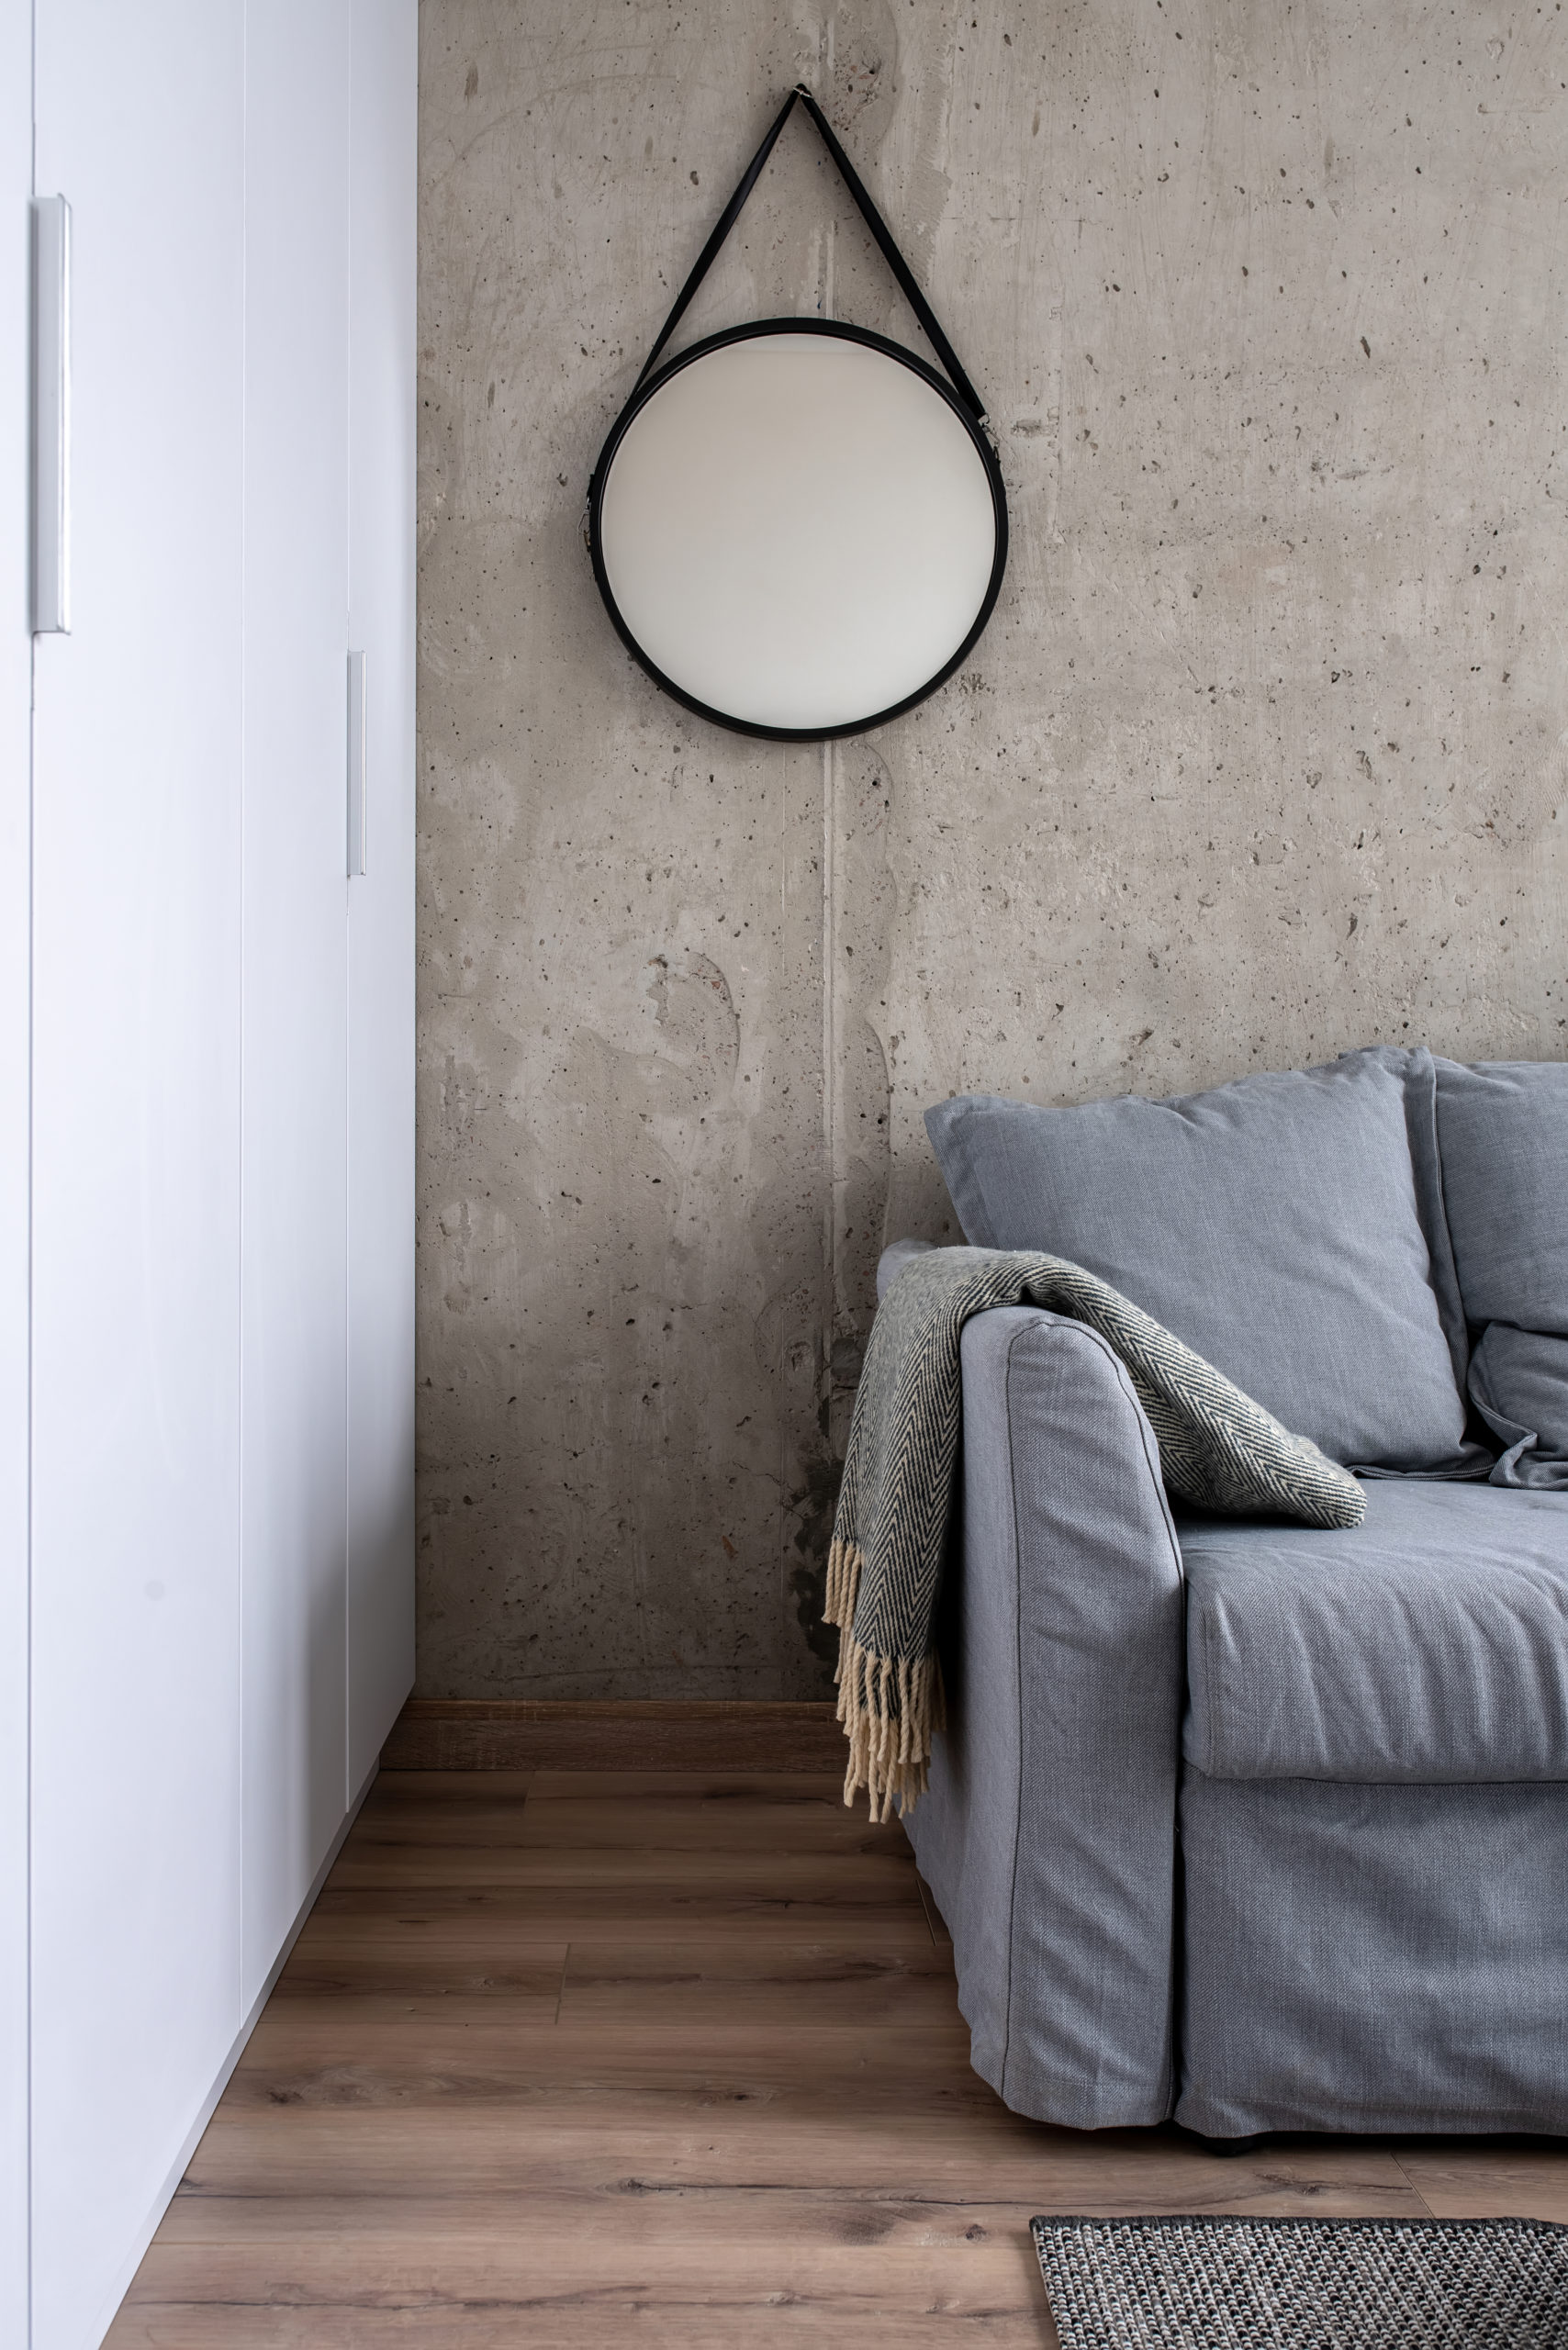 Great interior in modern style with concrete wall